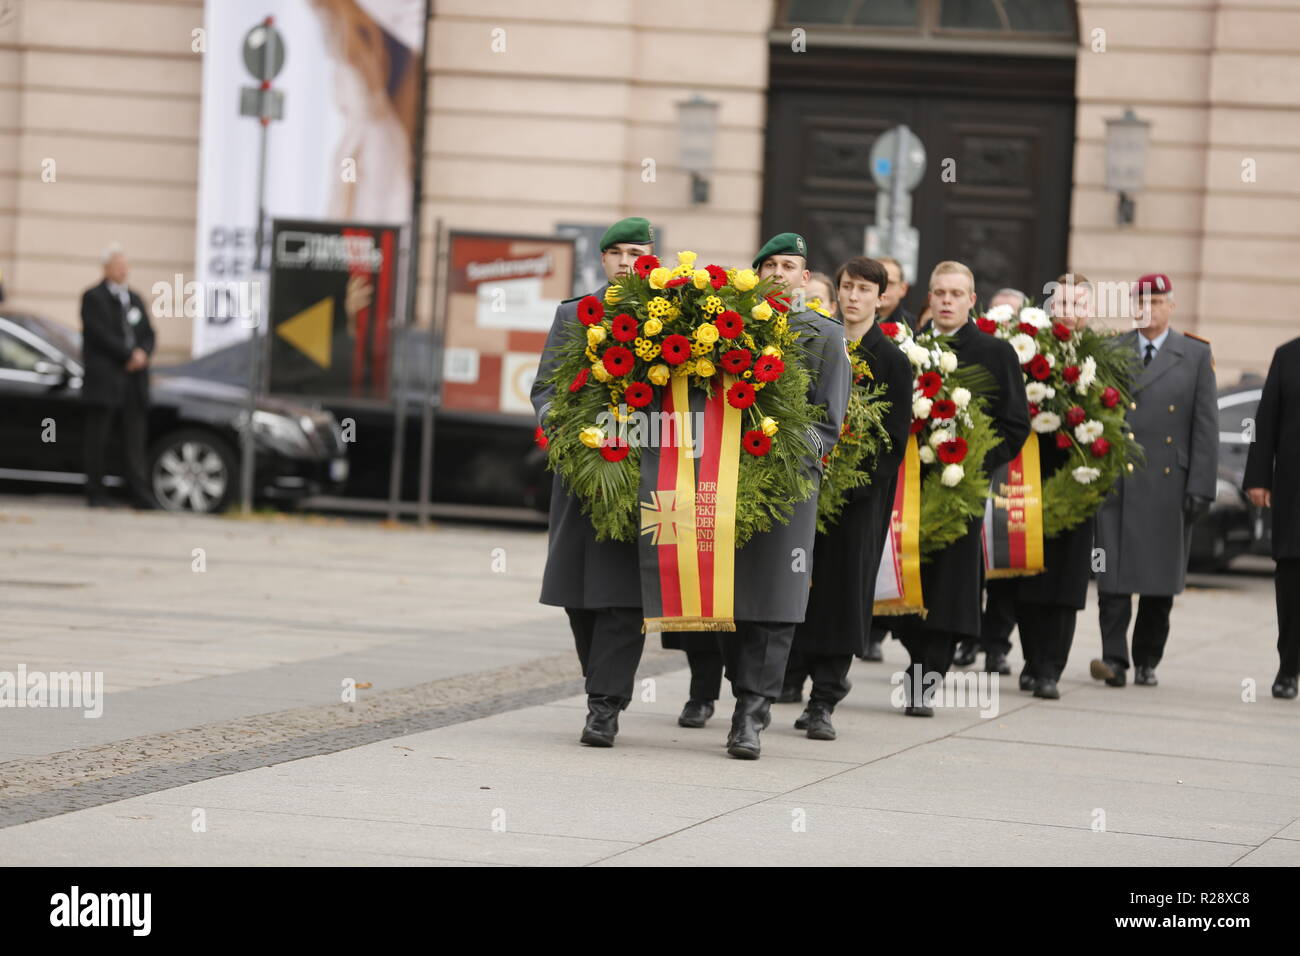 Berlin, Germany. 18th Nov, 2018. Chancellor Angela Merkel attends the commemoration events for the Memorial Day. Together with the French President Emmanuel Macron, Federal President Frank-Walter Steinmeier and representatives of the constitutional bodies of the Federal Council, Bundestag and Federal Constitutional Court she will lay down wreaths in Berlin. Credit: Simone Kuhlmey/Pacific Press/Alamy Live News - Stock Image